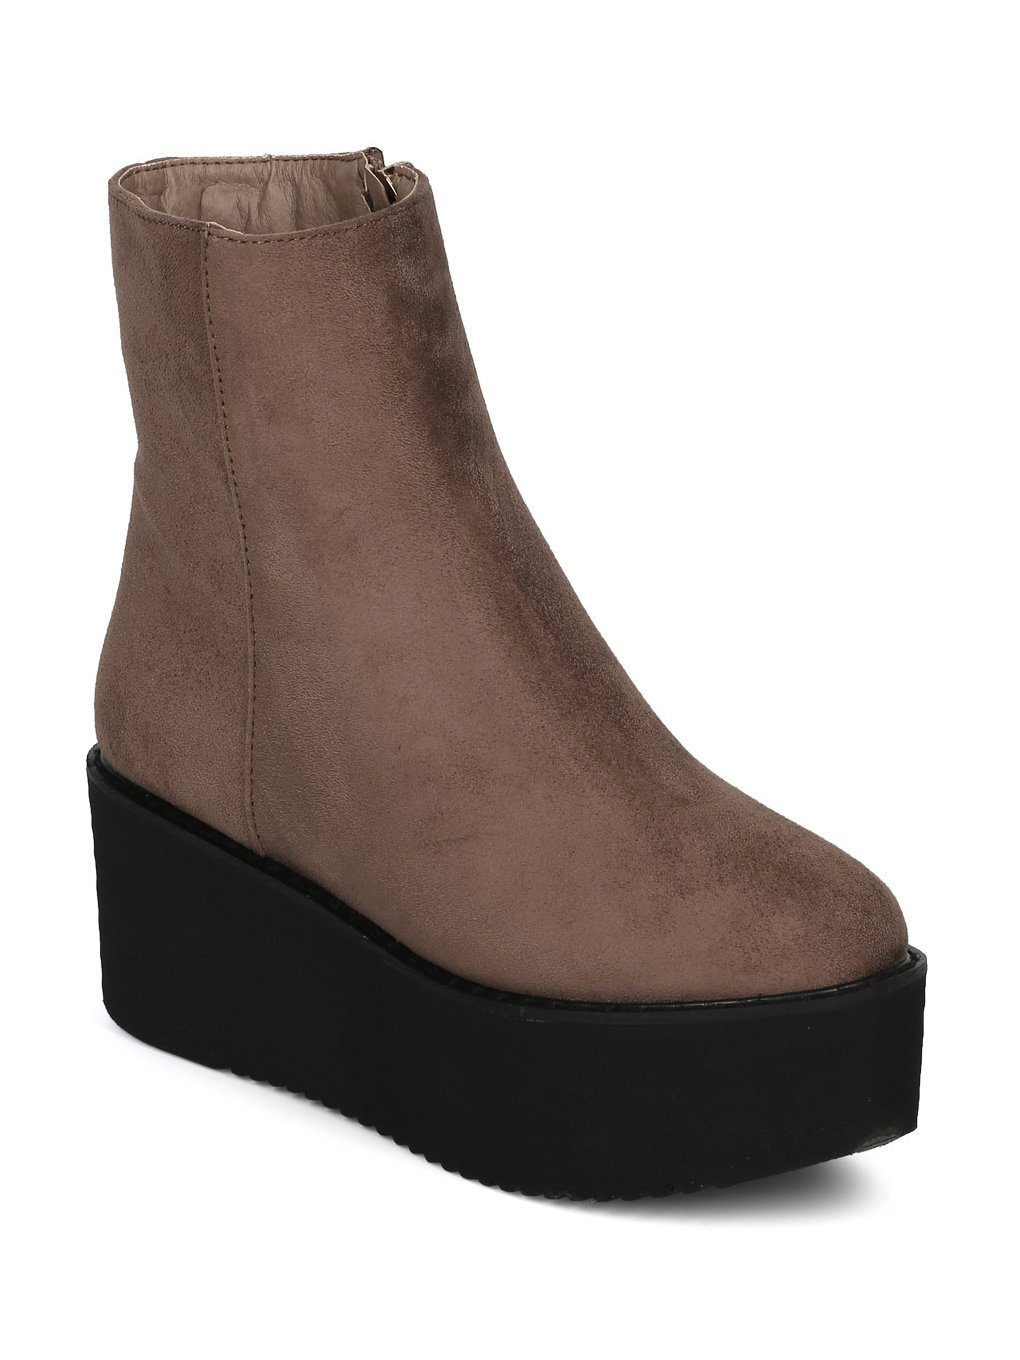 Indulge Hebe-I Women Round Toe Platform Creeper Ankle Bootie HE66 - Taupe Faux Suede (Size: 7.0) by Indulge (Image #7)